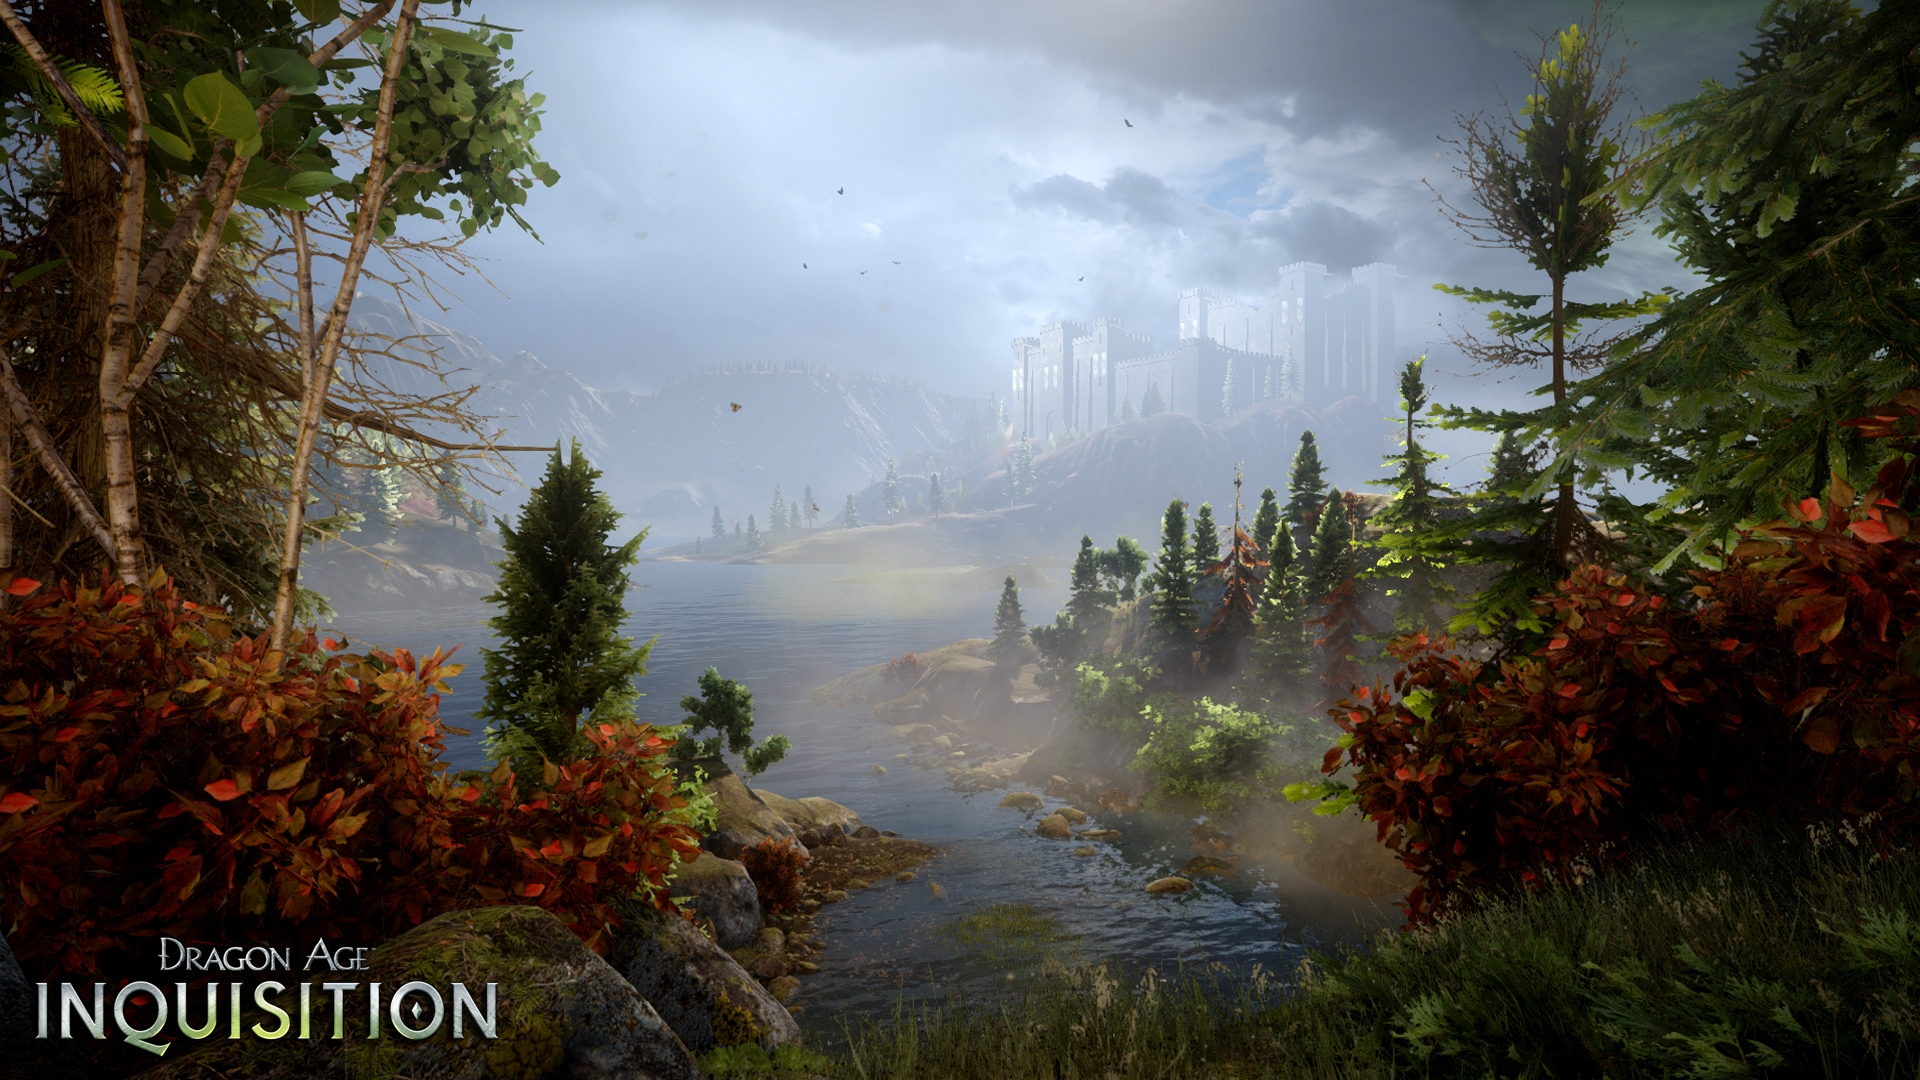 Download Dragon Age Inquisition Wallpaper 46379 1920x1080 Px High